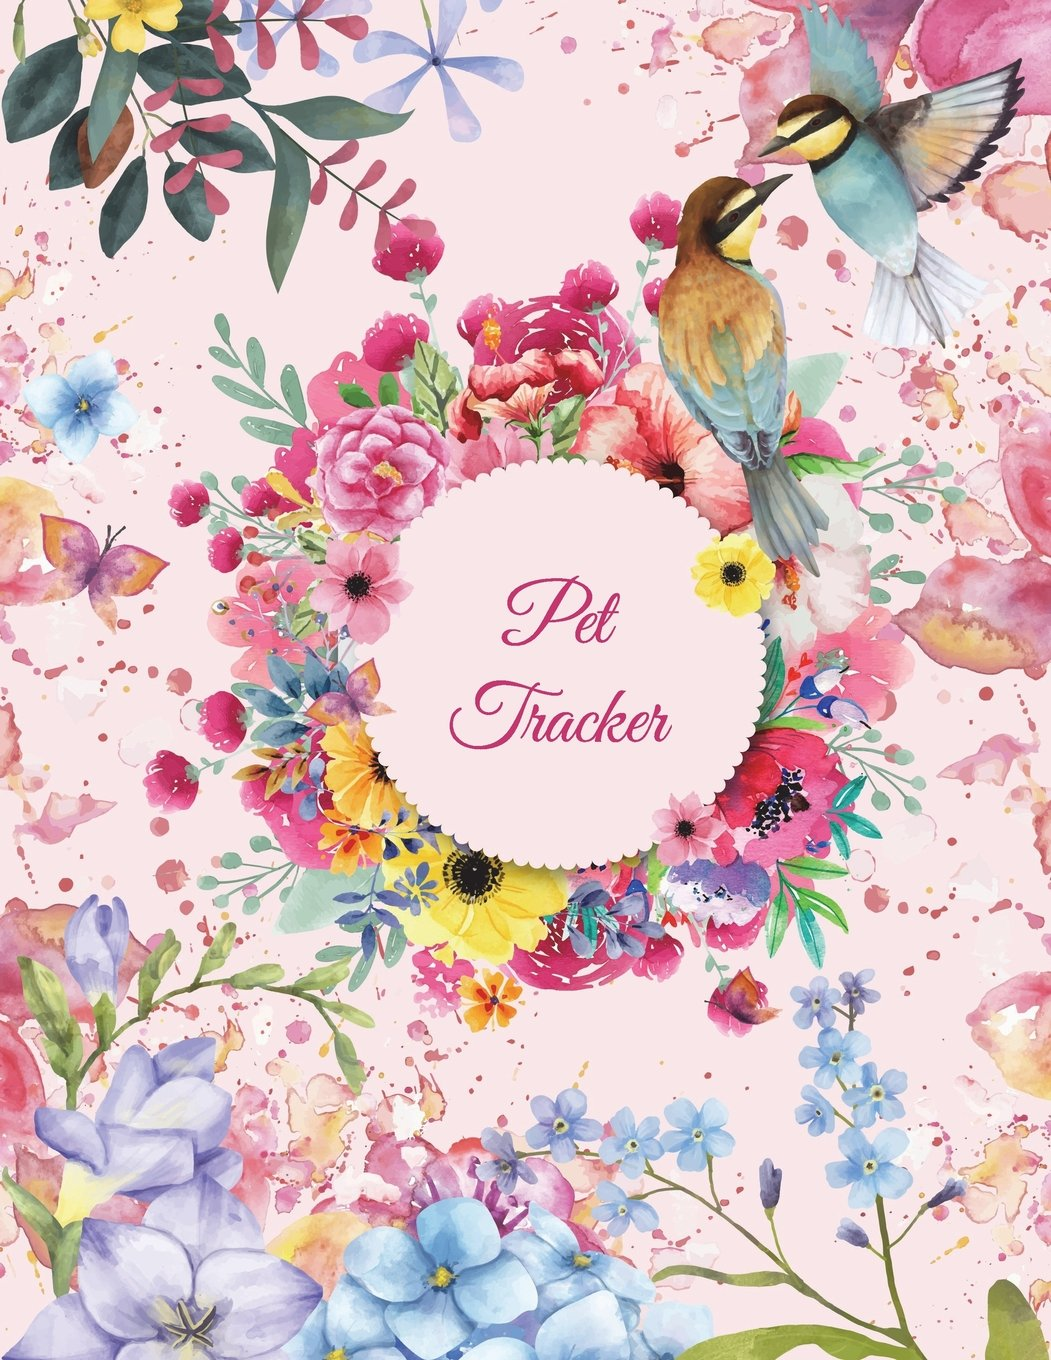 """Read Online Pet Tracker: Beauty Pink Flowers, Pet Health Record, Pet Sitter Notes Large Print 8.5"""" x 11"""" Record Your Pet Health, Daily Dogs Cats Care Journal pdf"""